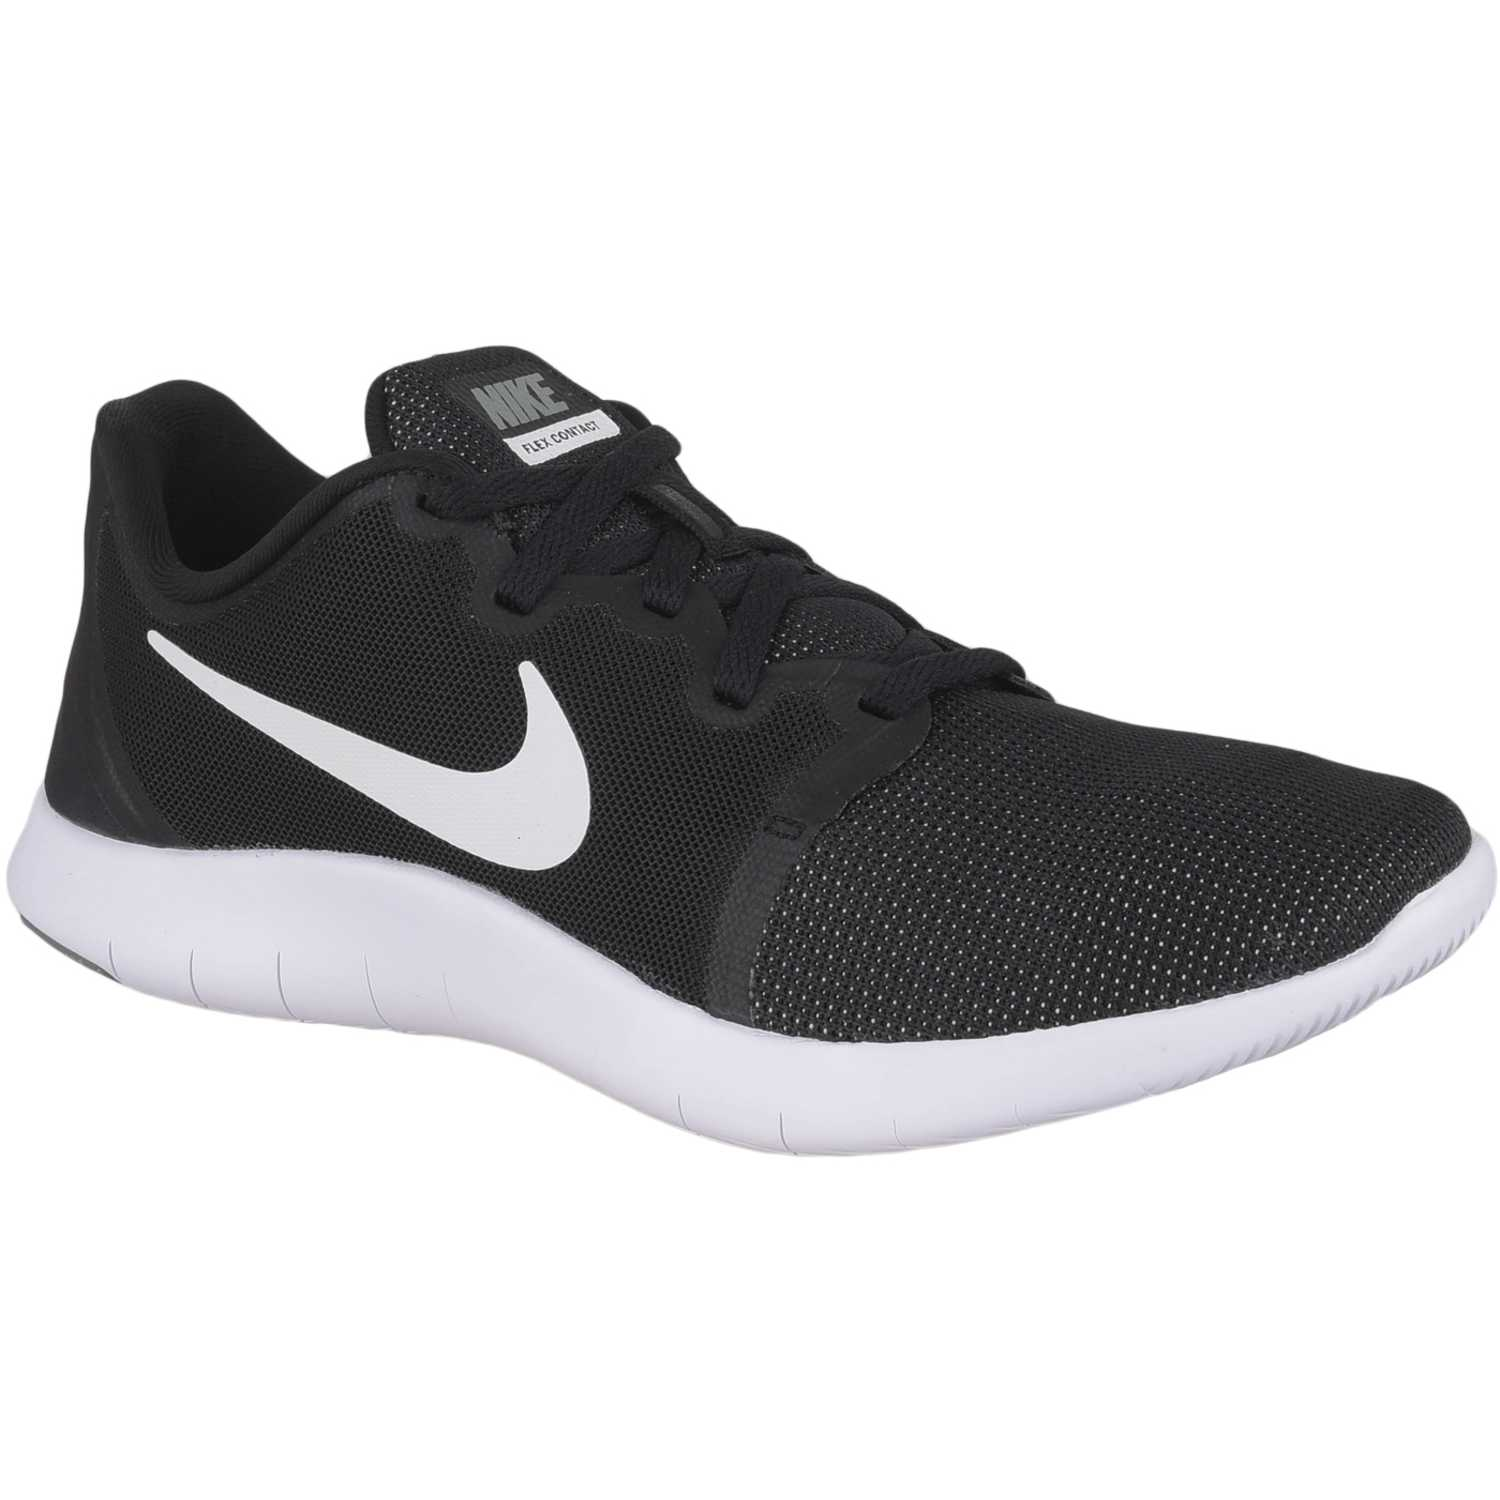 wholesale dealer ebee8 d0836 Zapatilla de Mujer Nike Negro / blanco wmns nike flex contact 2 ...